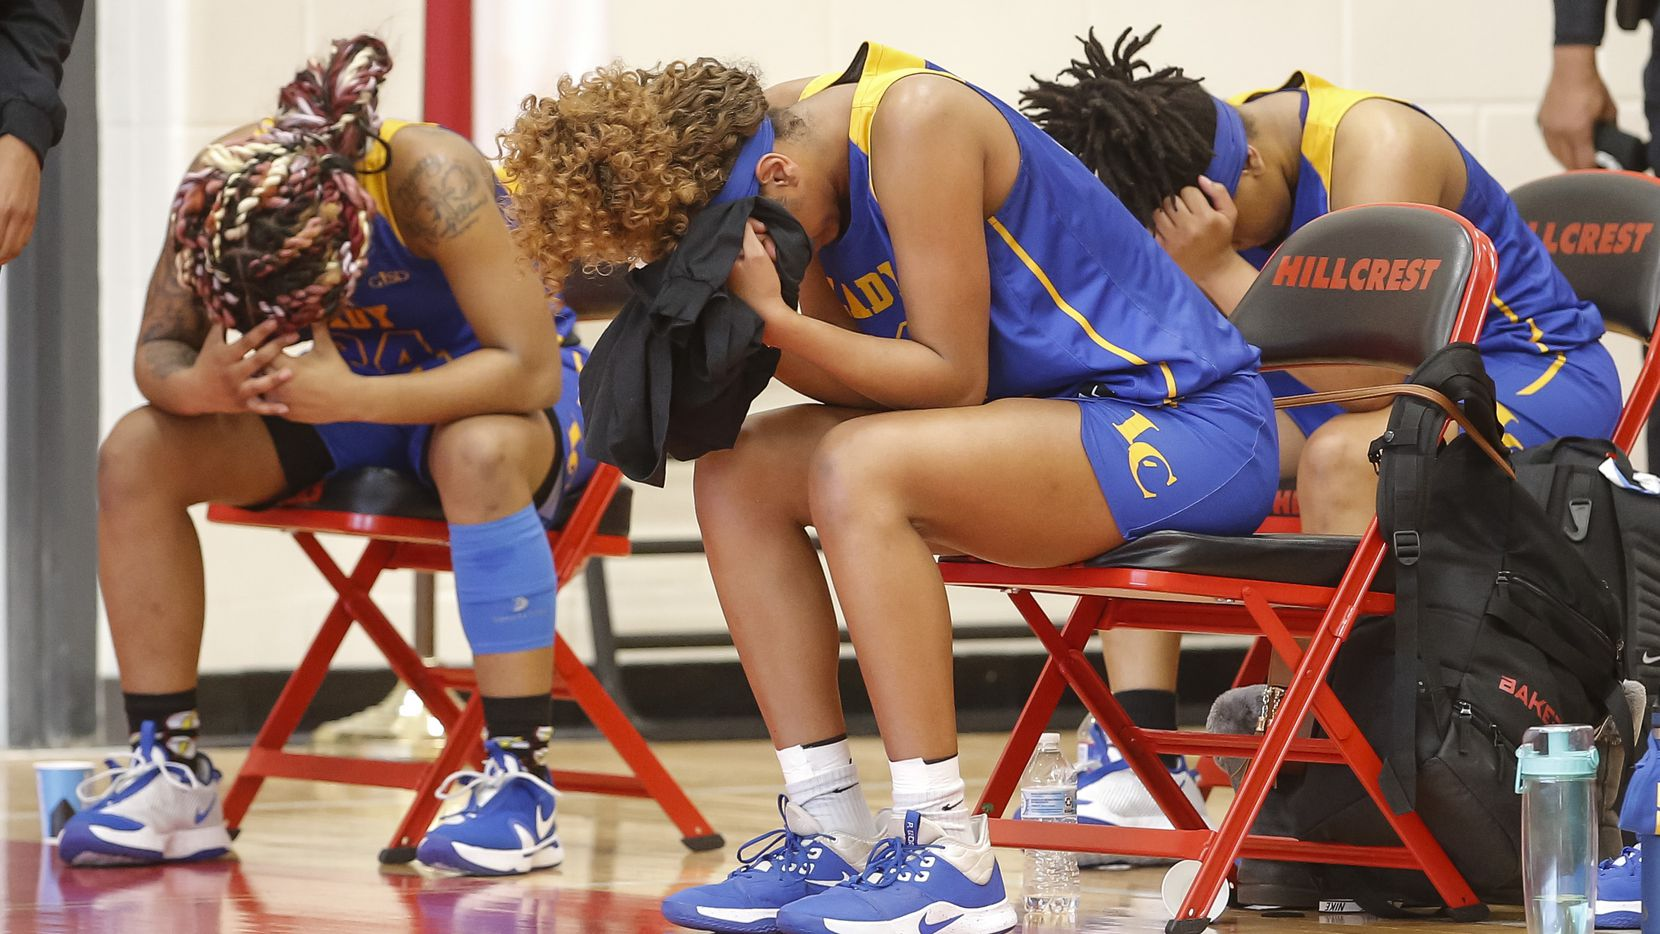 Members of the Lakeview Centennial girls basketball team react after falling 49-42 to Skyline in the first-round playoff game at Hillcrest High School in Dallas, Saturday, February 13, 2021. (Brandon Wade/Special Contributor)